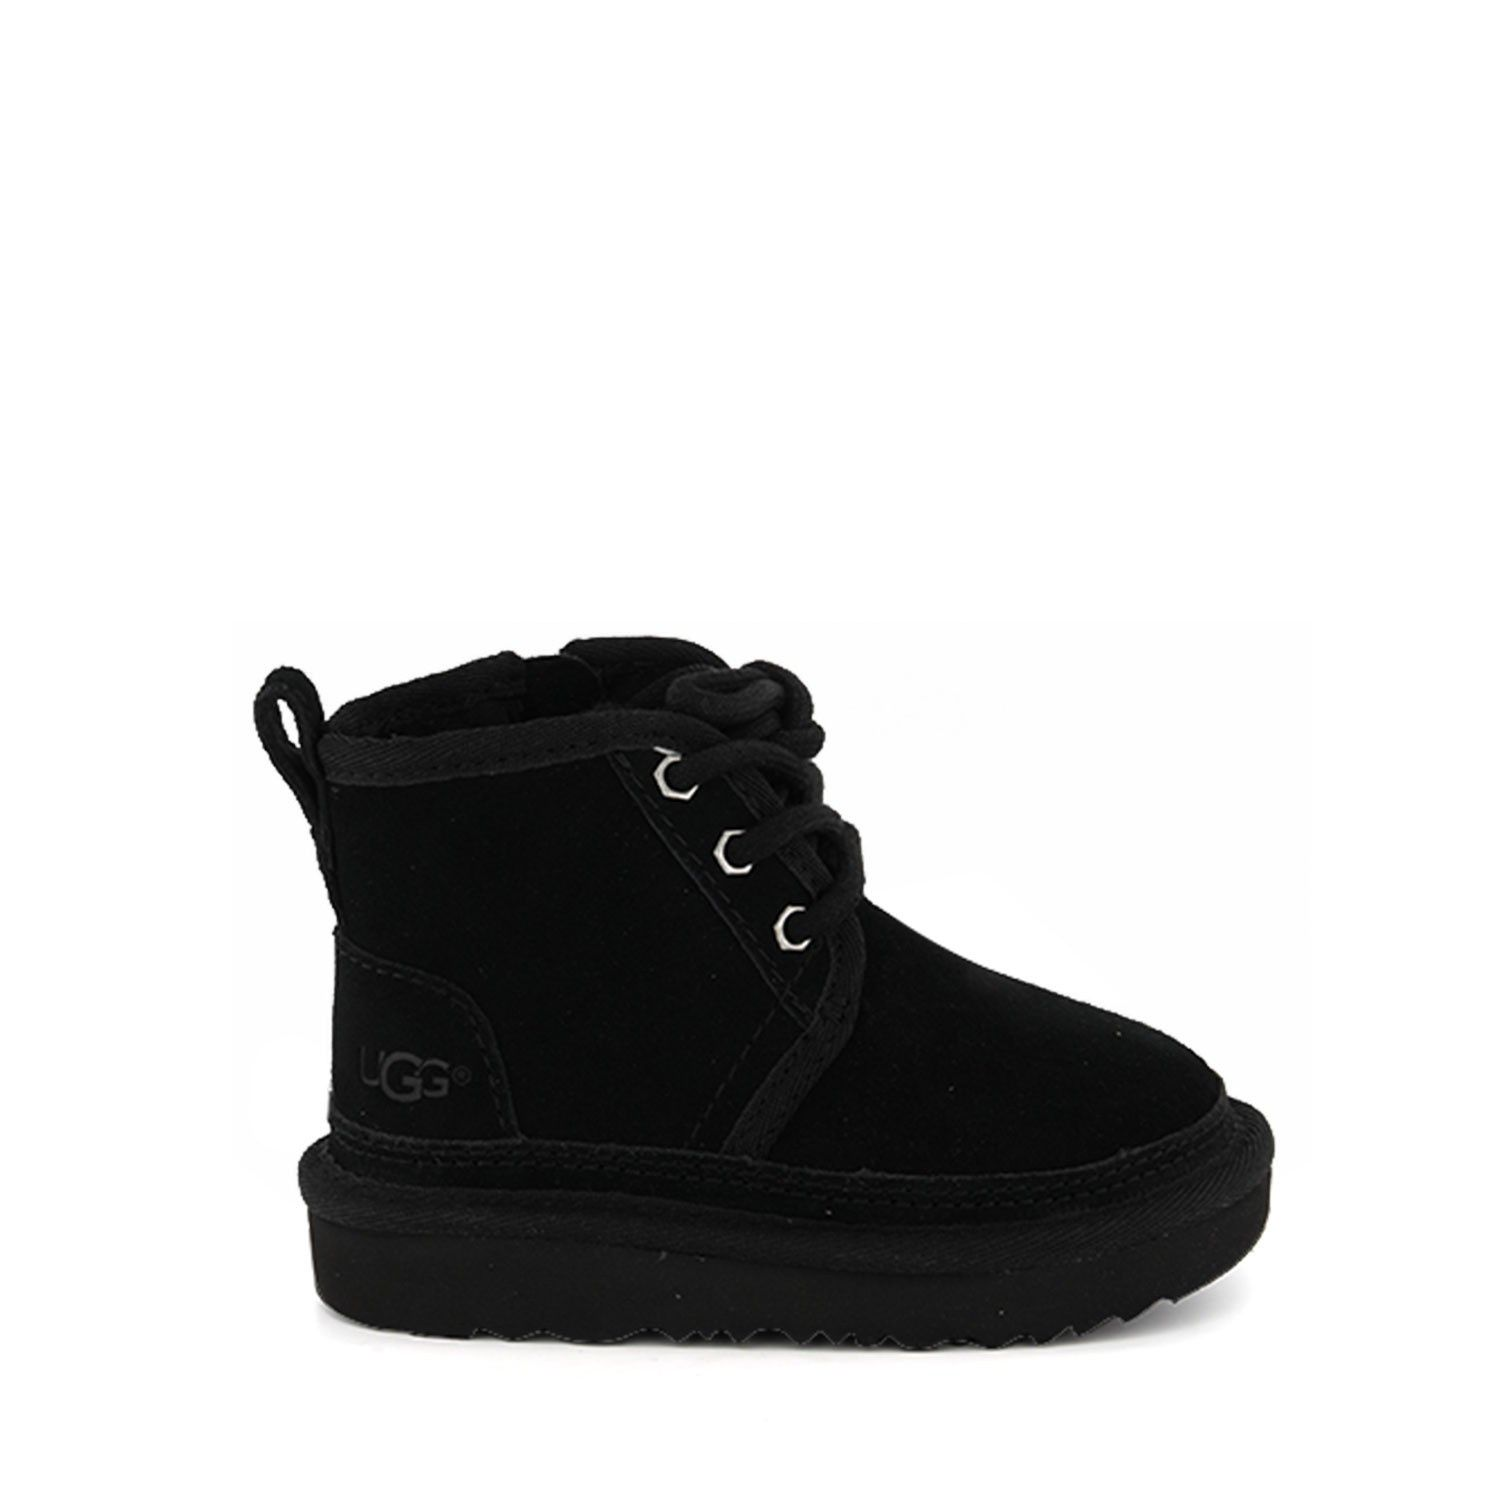 Picture of Ugg 1017320 kids boots black